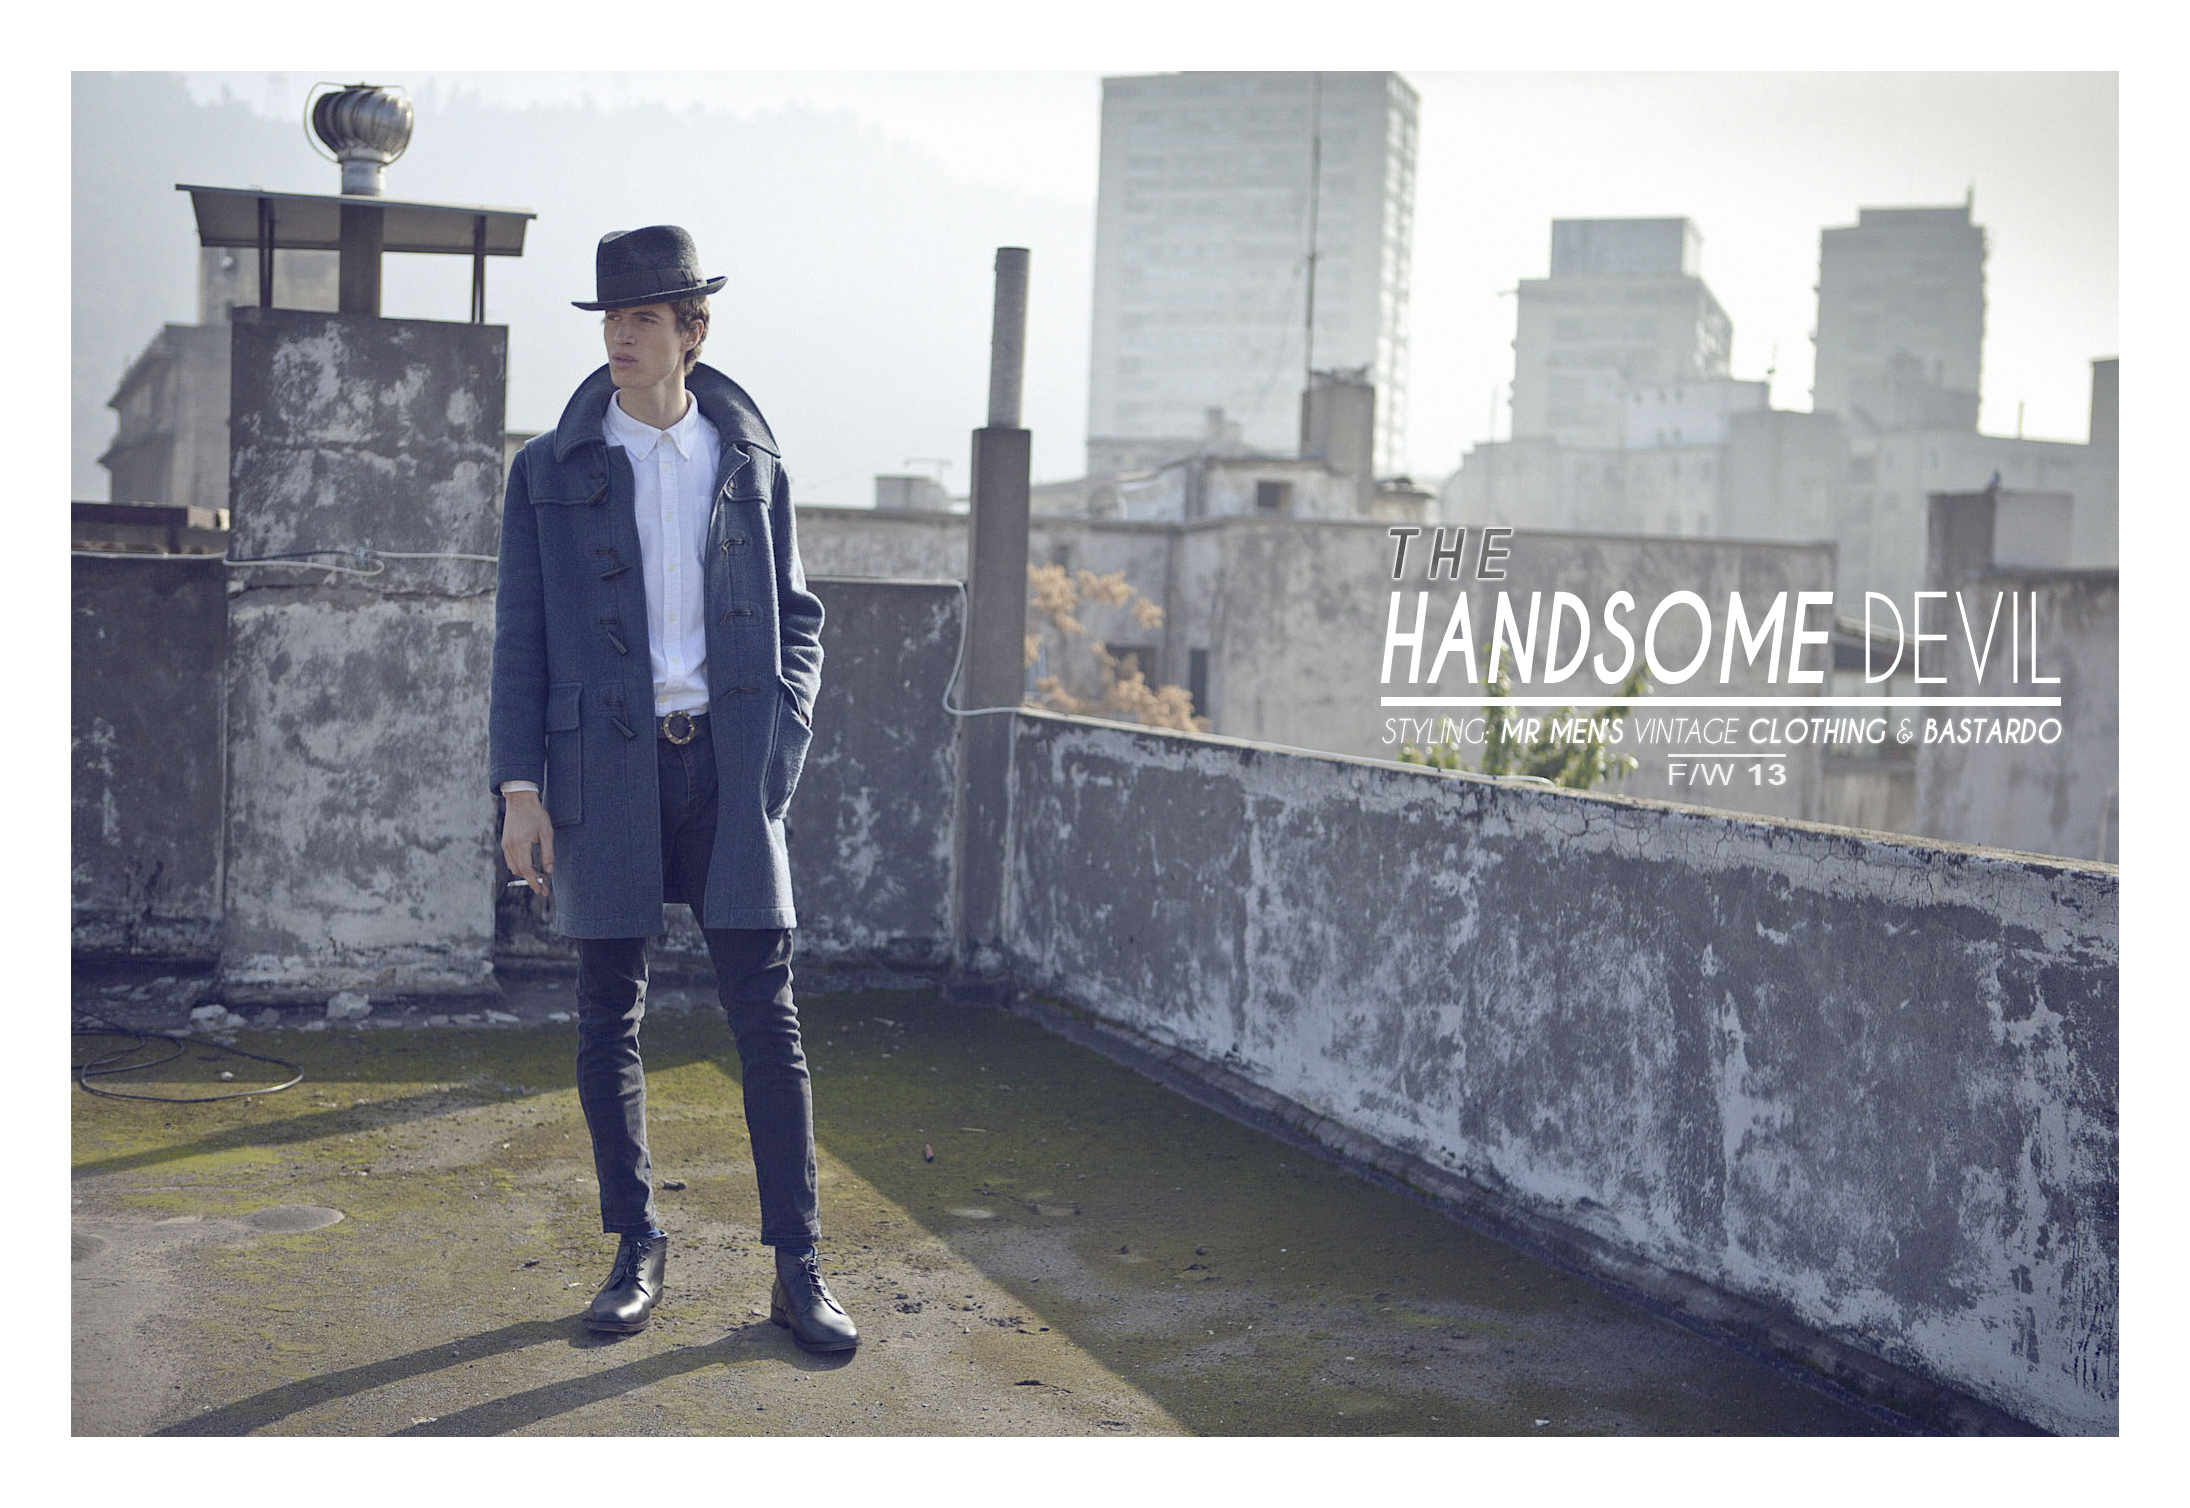 Bastardo y Mr. lanzan lookbook FW2013: The Handsome Devil